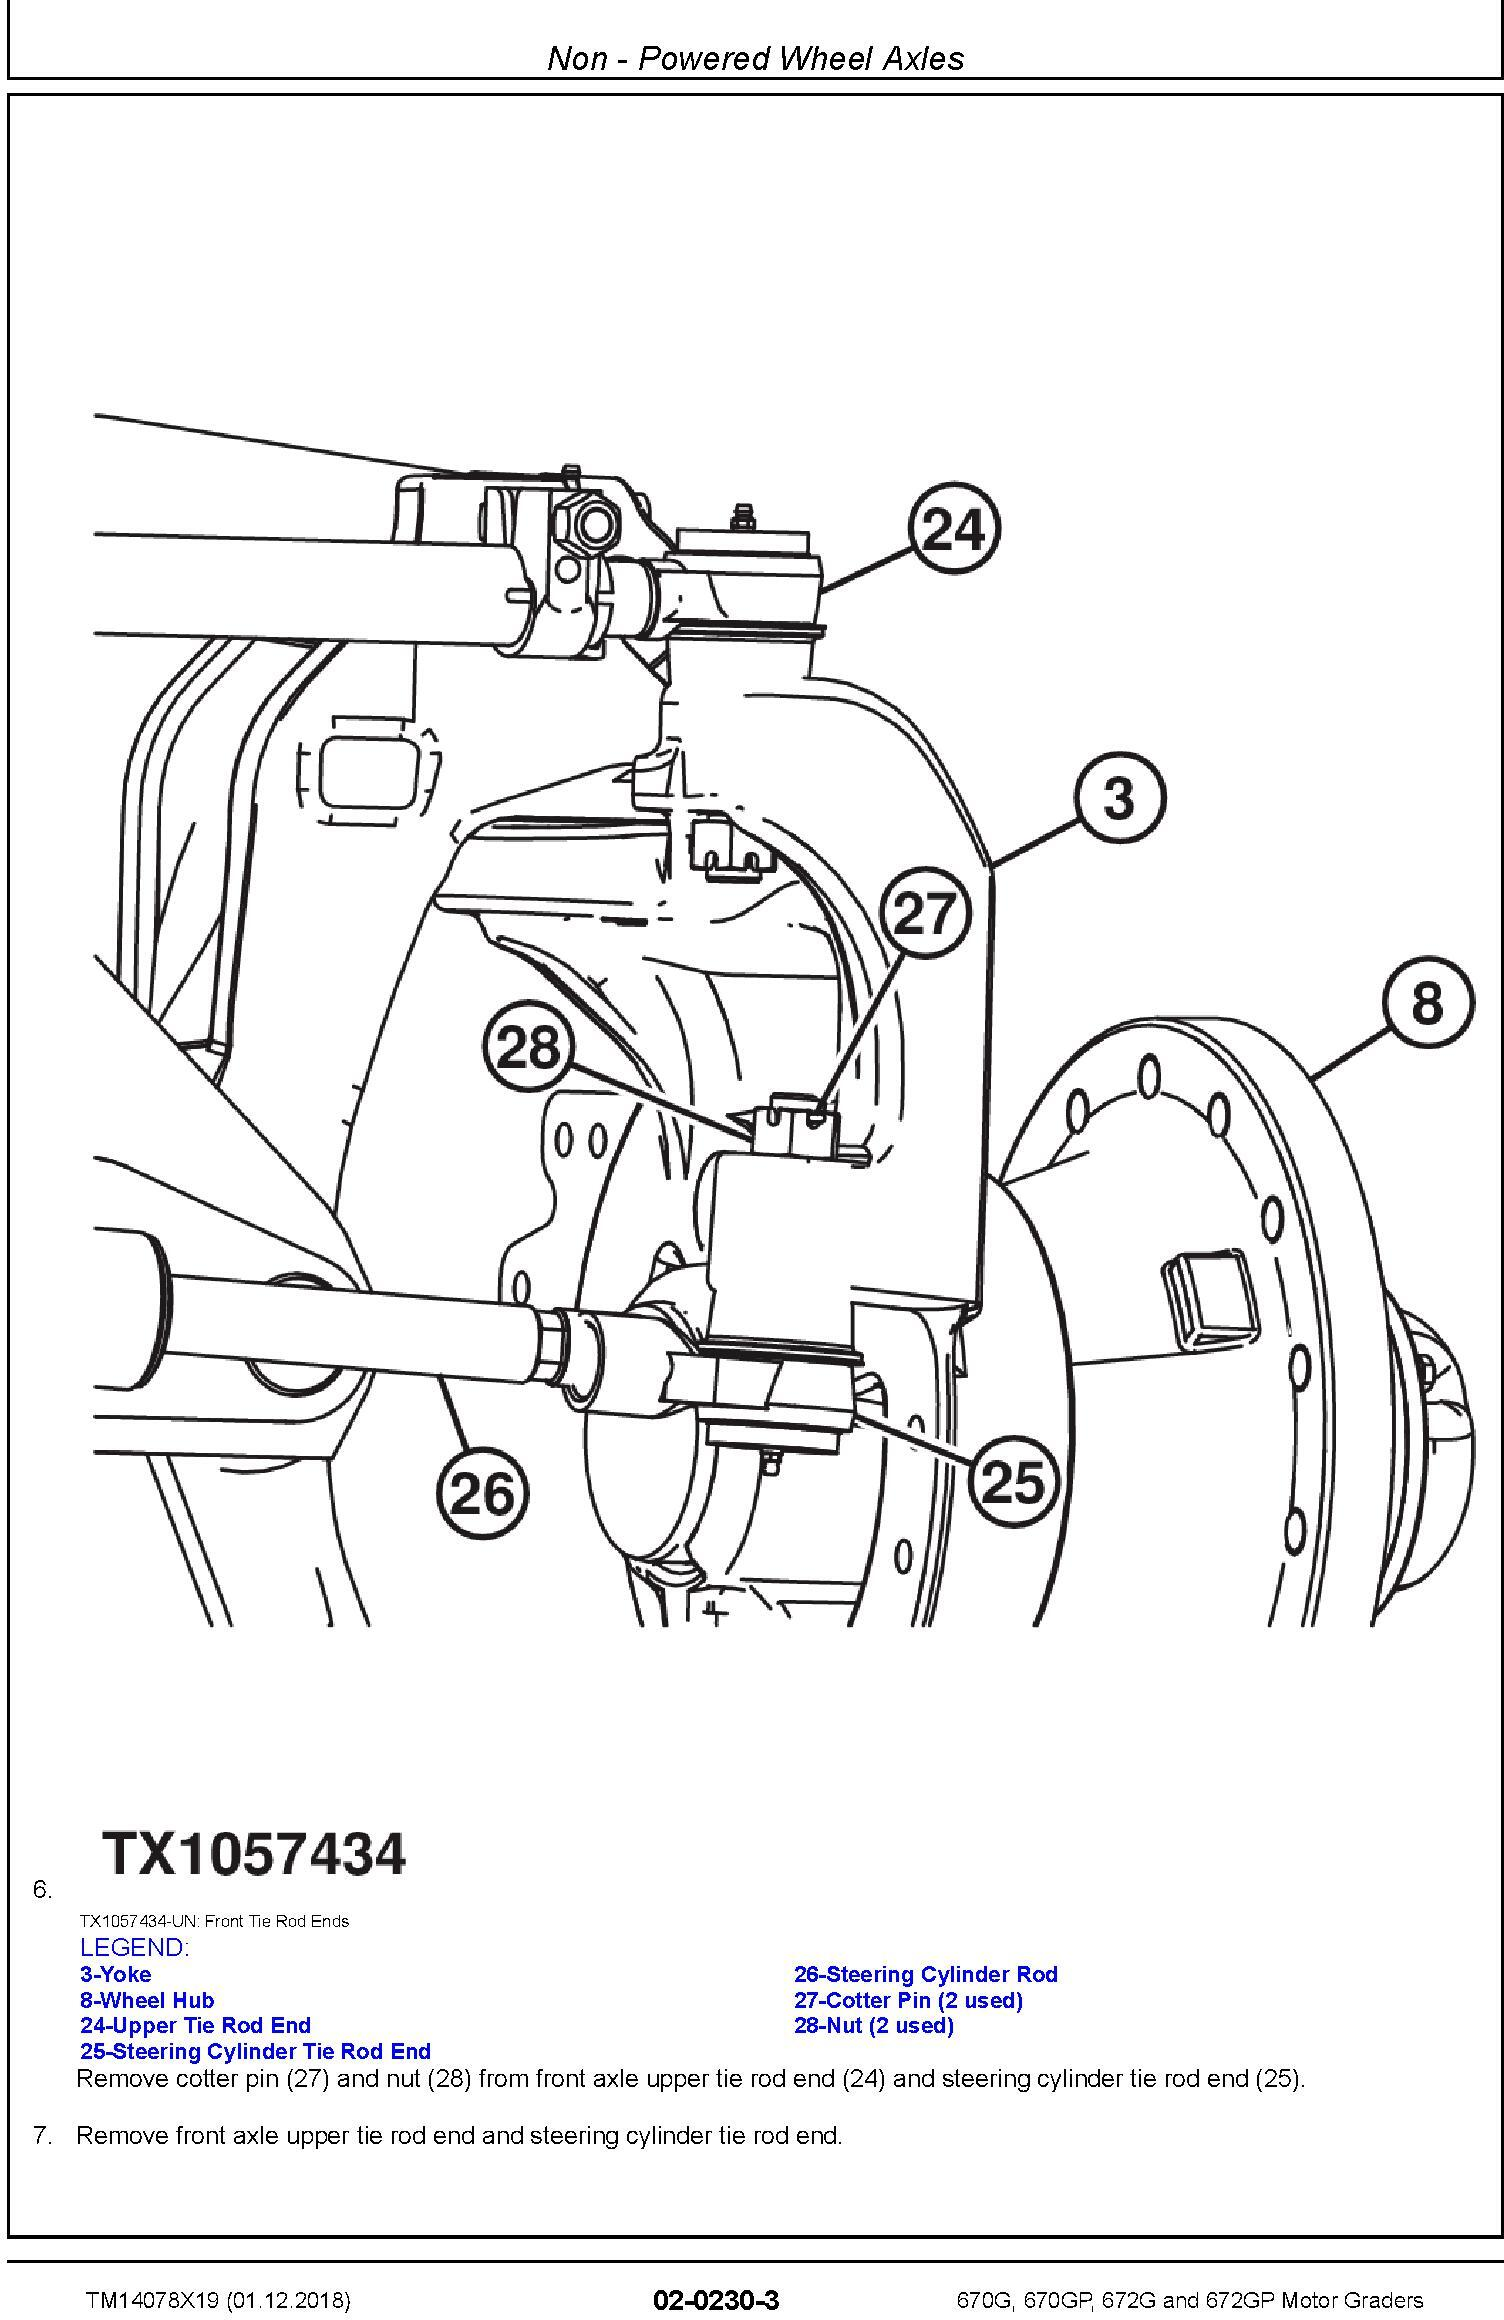 John Deere 670G, 670GP, 672G, 672GP (SN. C678818—680877) Motor Graders Repair Manual (TM14078X19) - 2